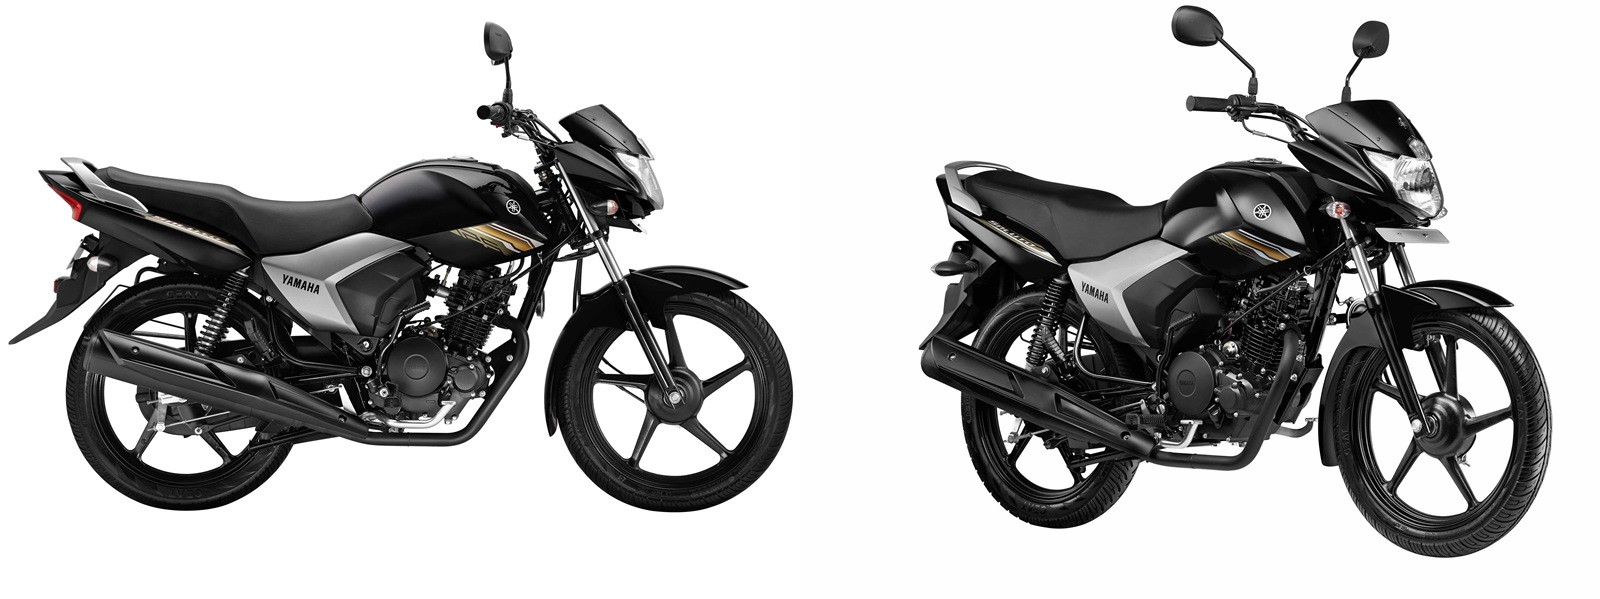 Yamaha Saluto 125 Brave Black colour option